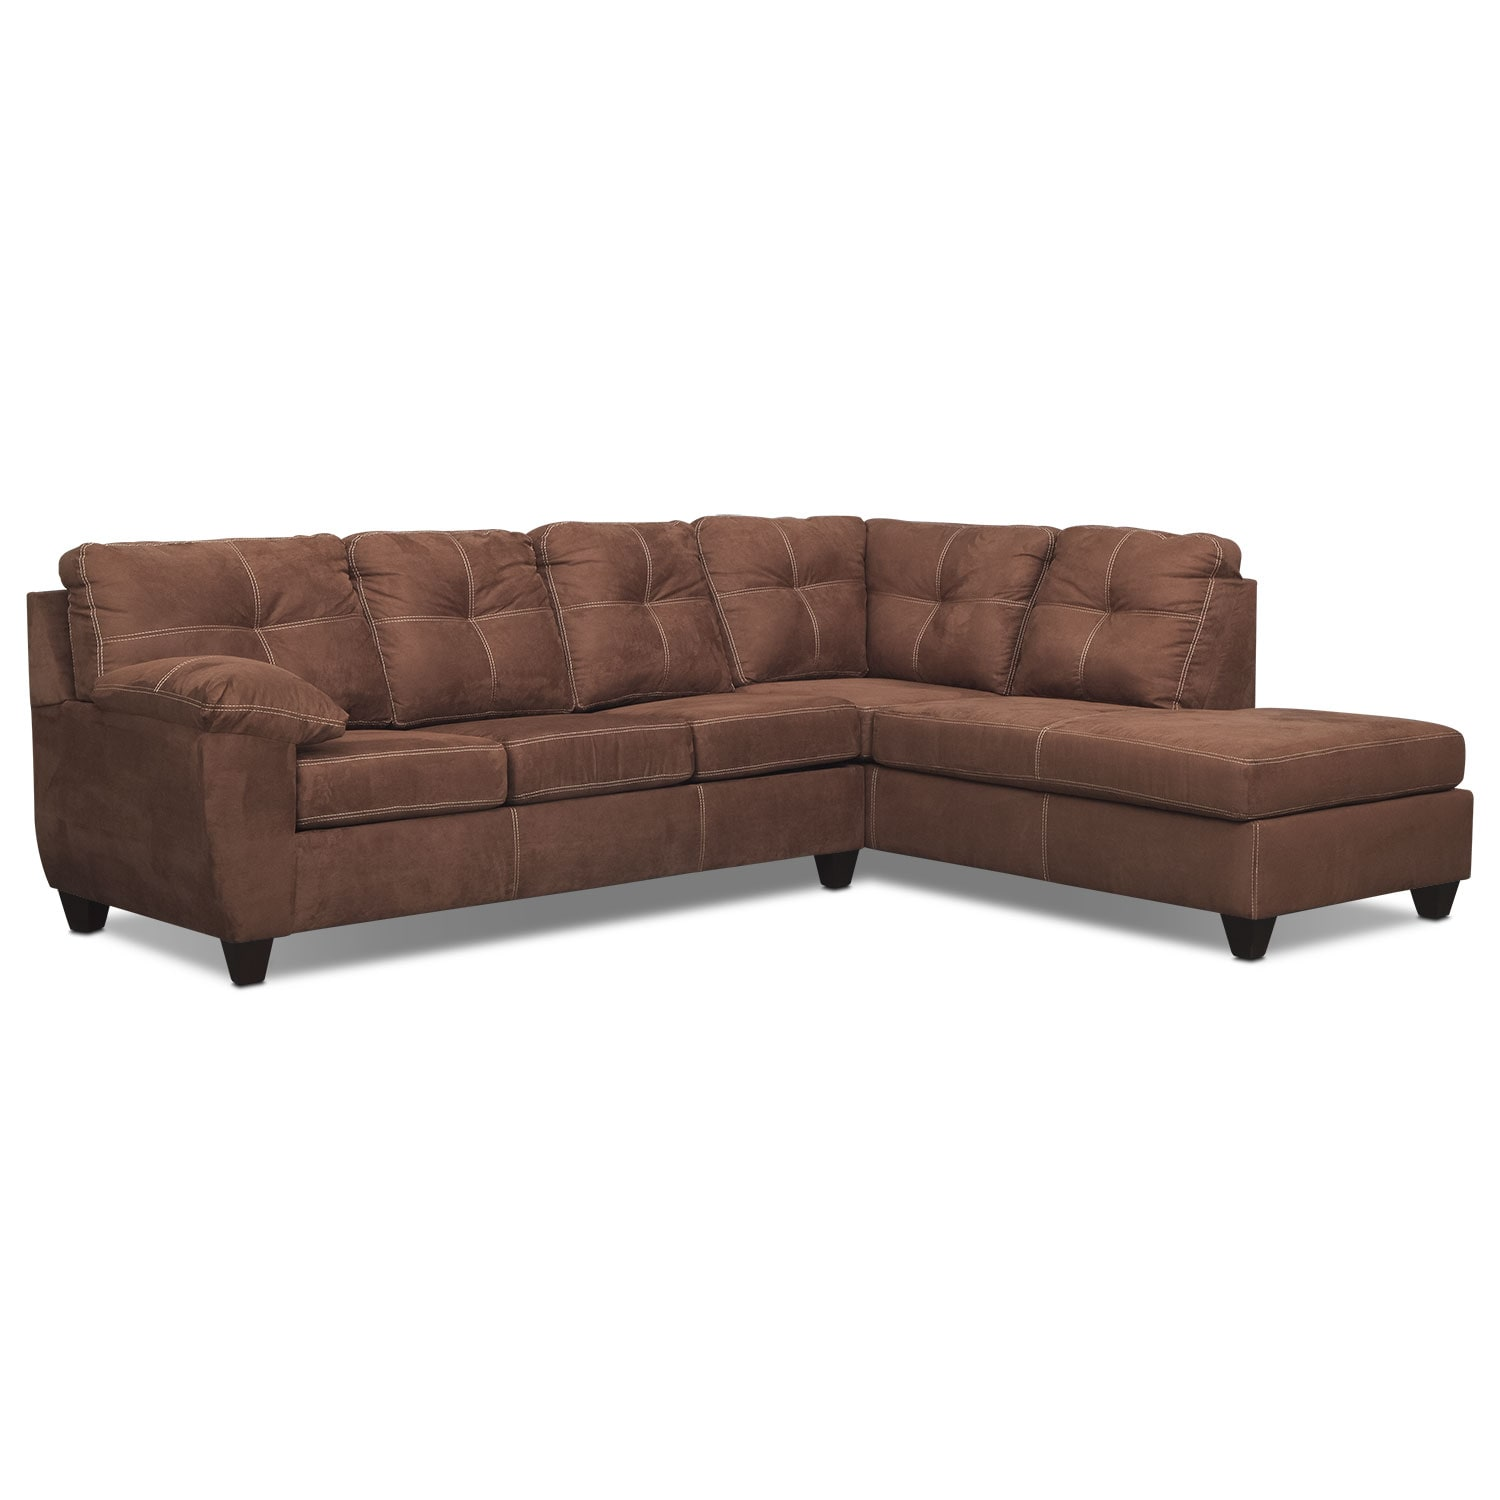 Rialto 2-Piece Innerspring Sleeper Sectional with Right-Facing Chaise - Coffee